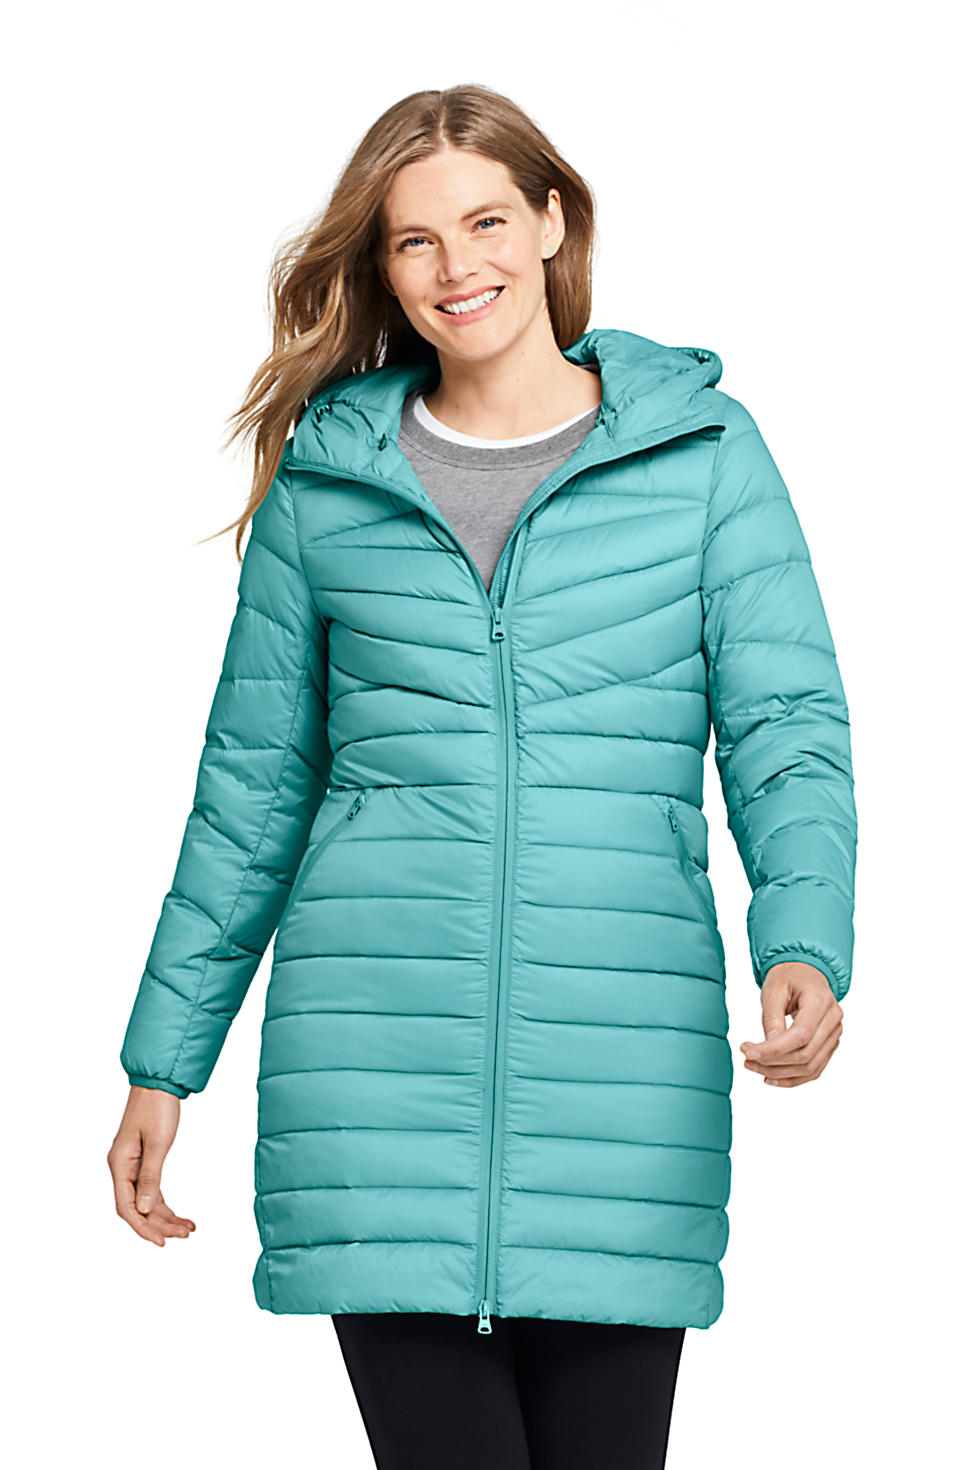 Lands End Womens Ultralight Packable Long Down Coat (various colors/sizes)